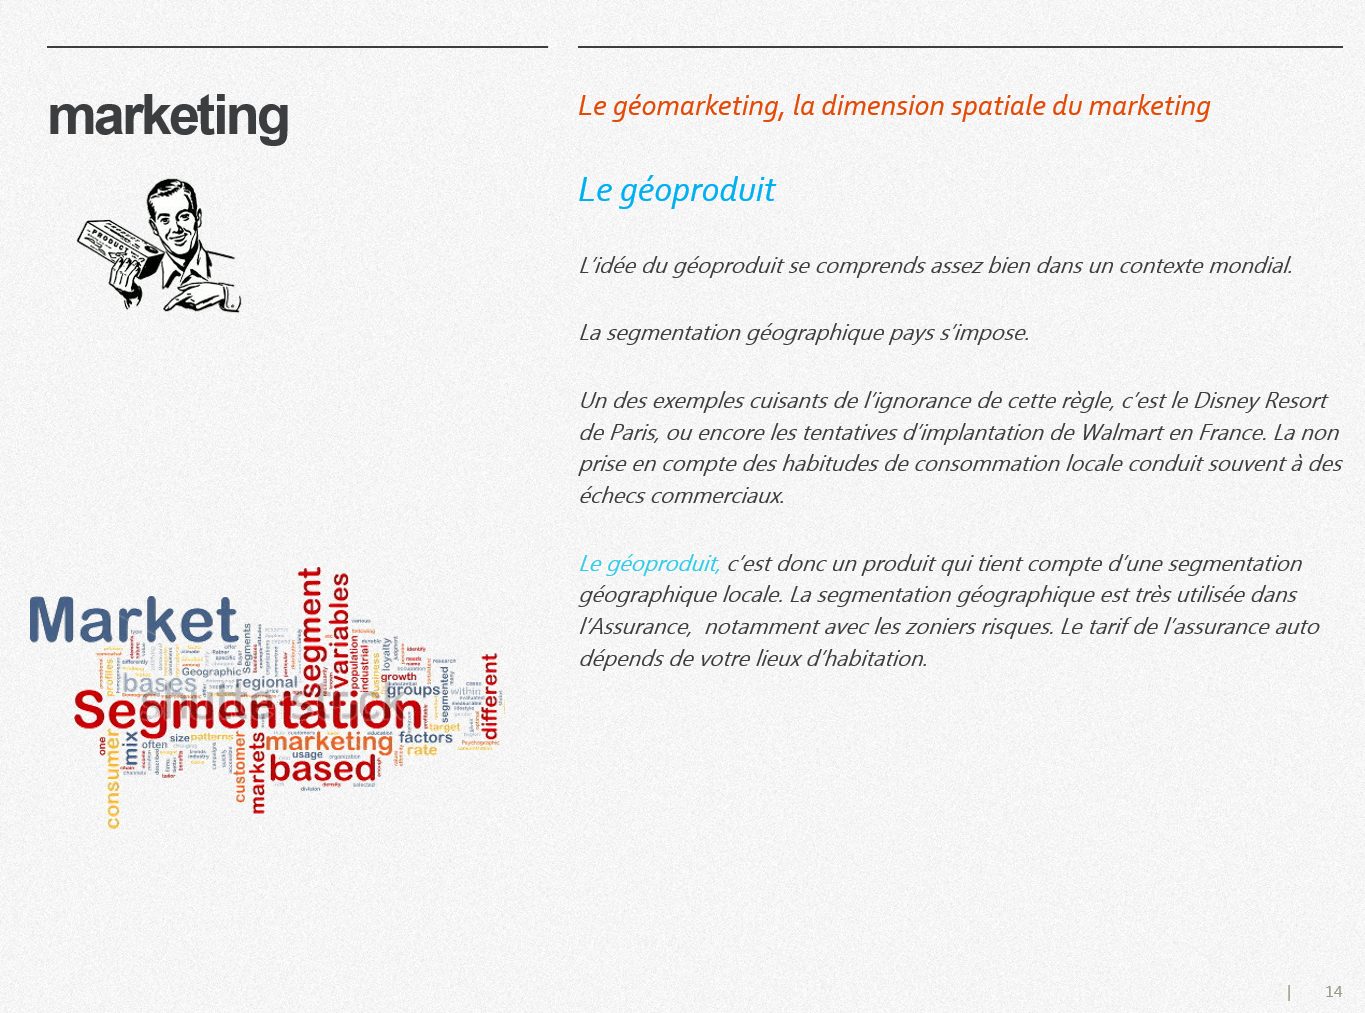 GMKT Slidedoc P14 Marketing 4